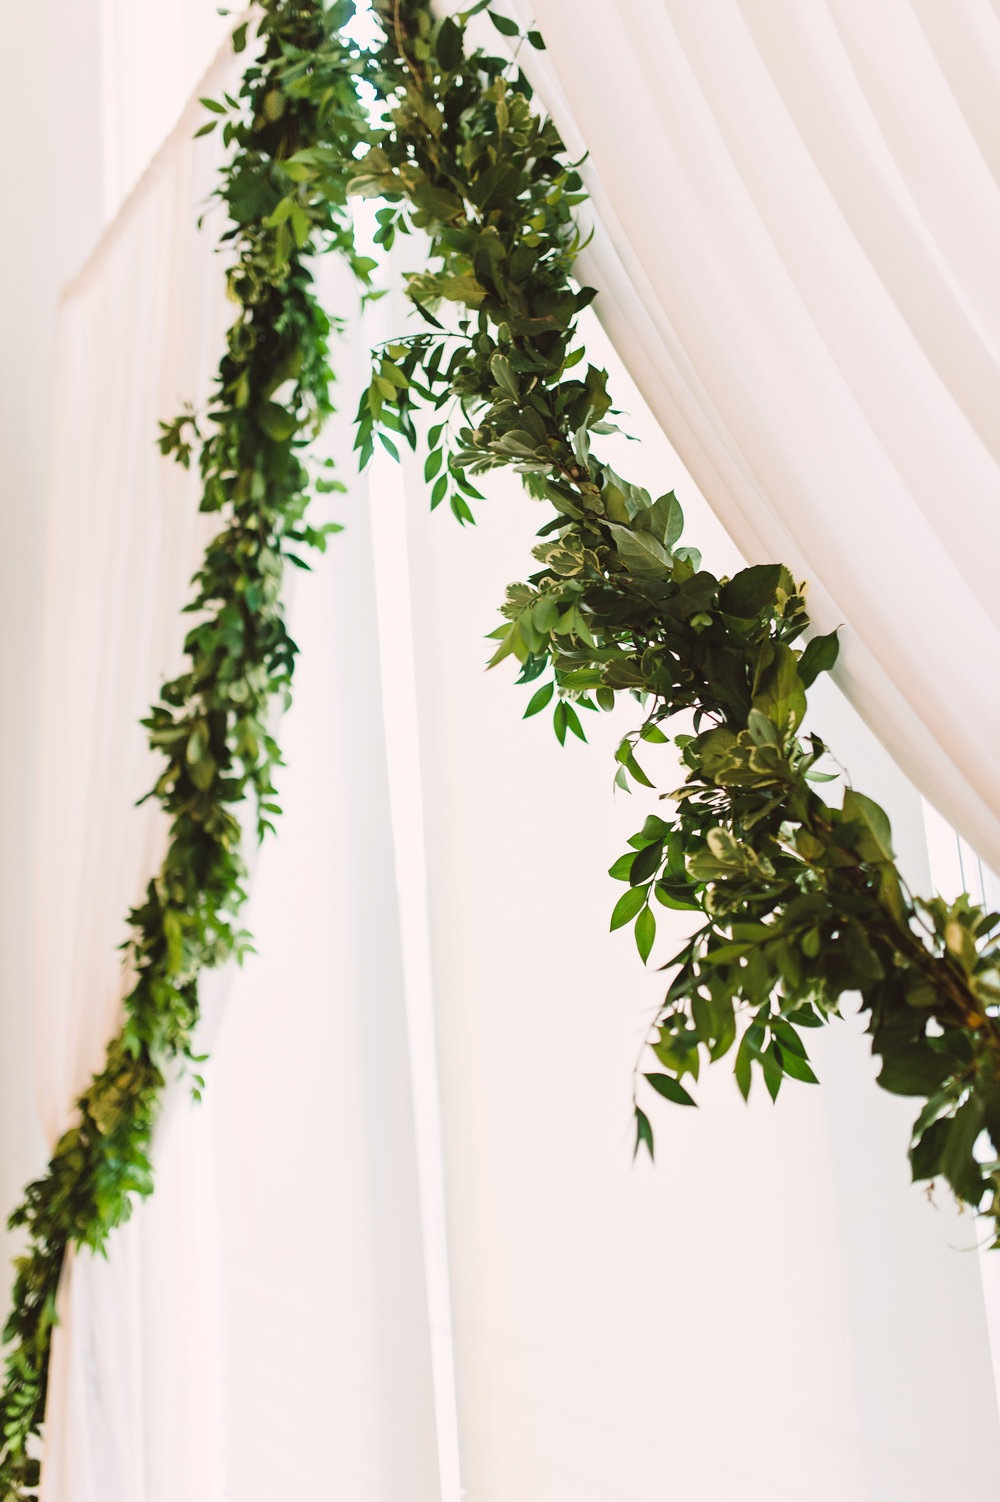 Wedding ceremony in the Atrium at the Mint Museum, Wedding draping, Wedding arch, Greenery garland, Wedding ceremony decor, Wedding ceremony set-up, Mint Museum Uptown wedding in Charlotte, North Carolina by The Graceful Host